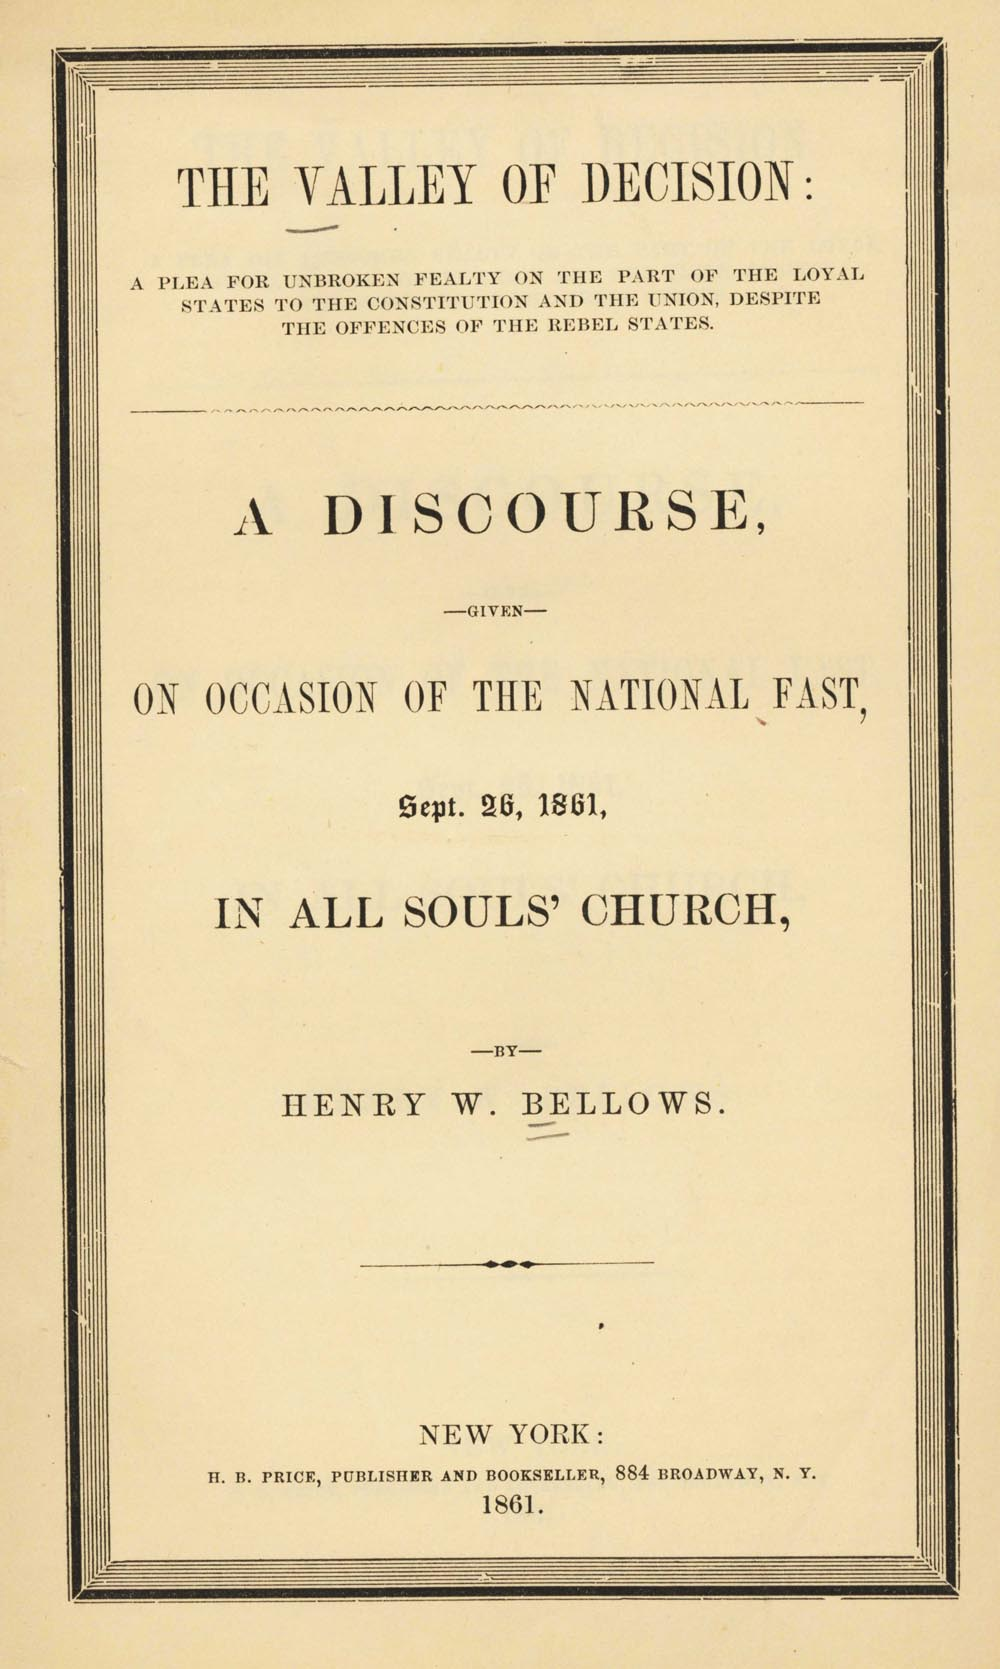 Cover of pamphlet sermon by Henry Whitney Bellows, The Valley of Decision